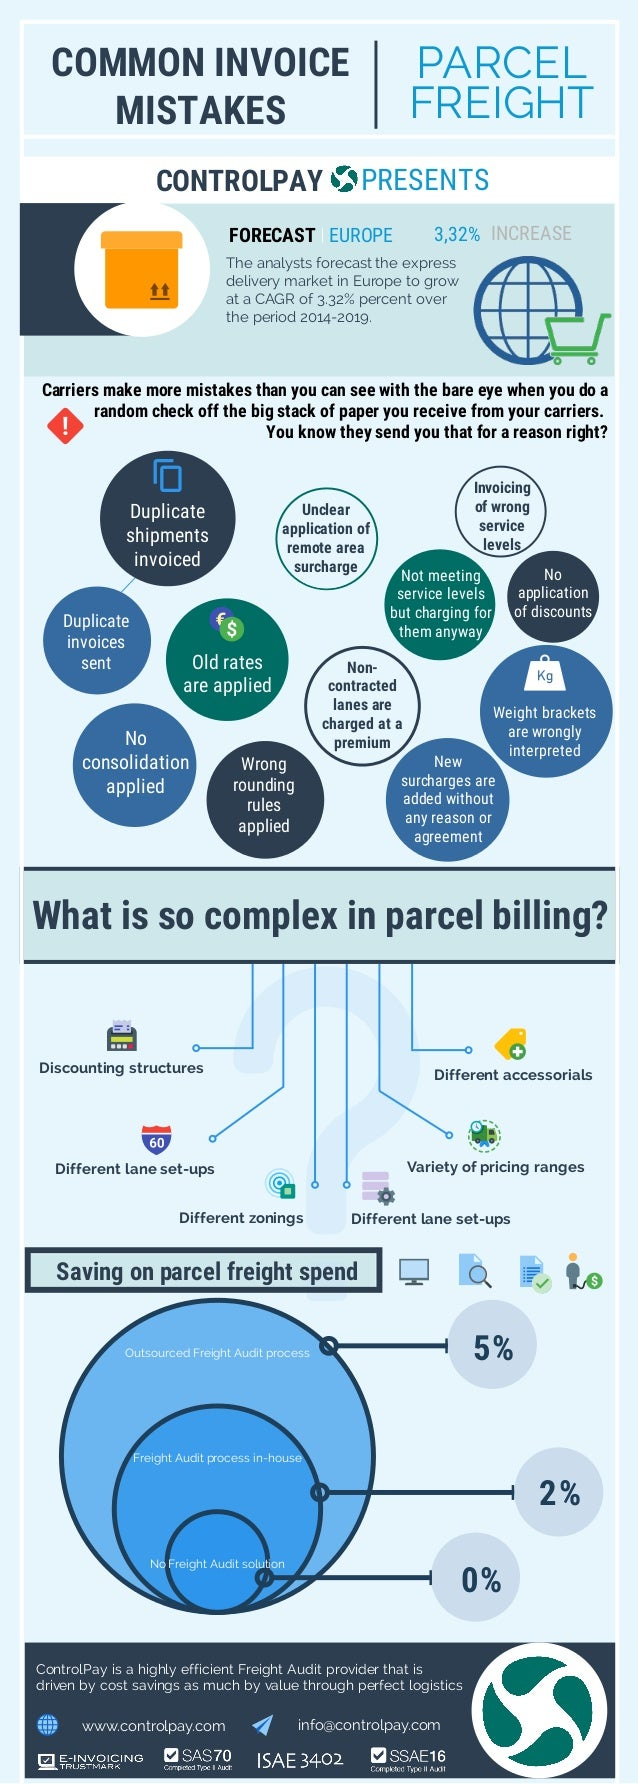 COMMON INVOICE MISTAKES PARCEL FREIGHT FORECAST Carriers make more mistakes than you can see with the bare eye when you do...